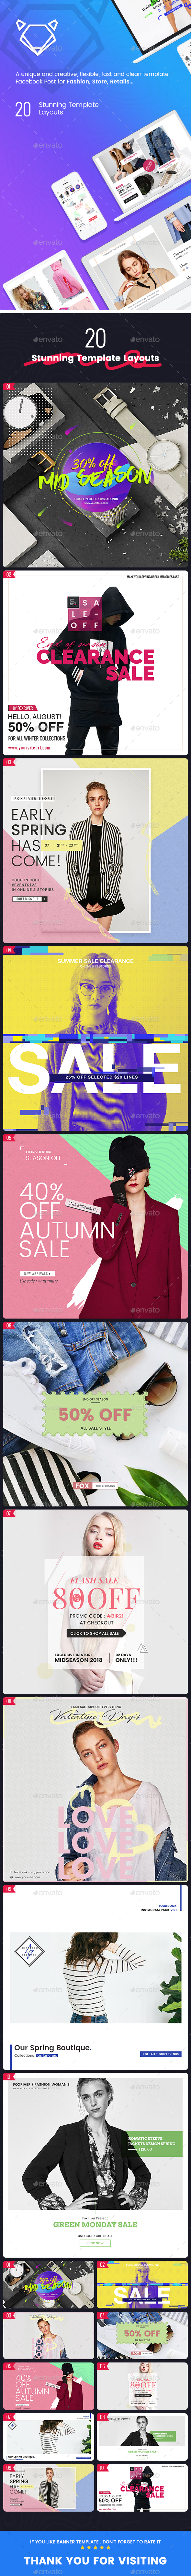 Fashion Facebook Banners Ad - 20PSD [02 Sizes Each] - Banners & Ads Web Elements